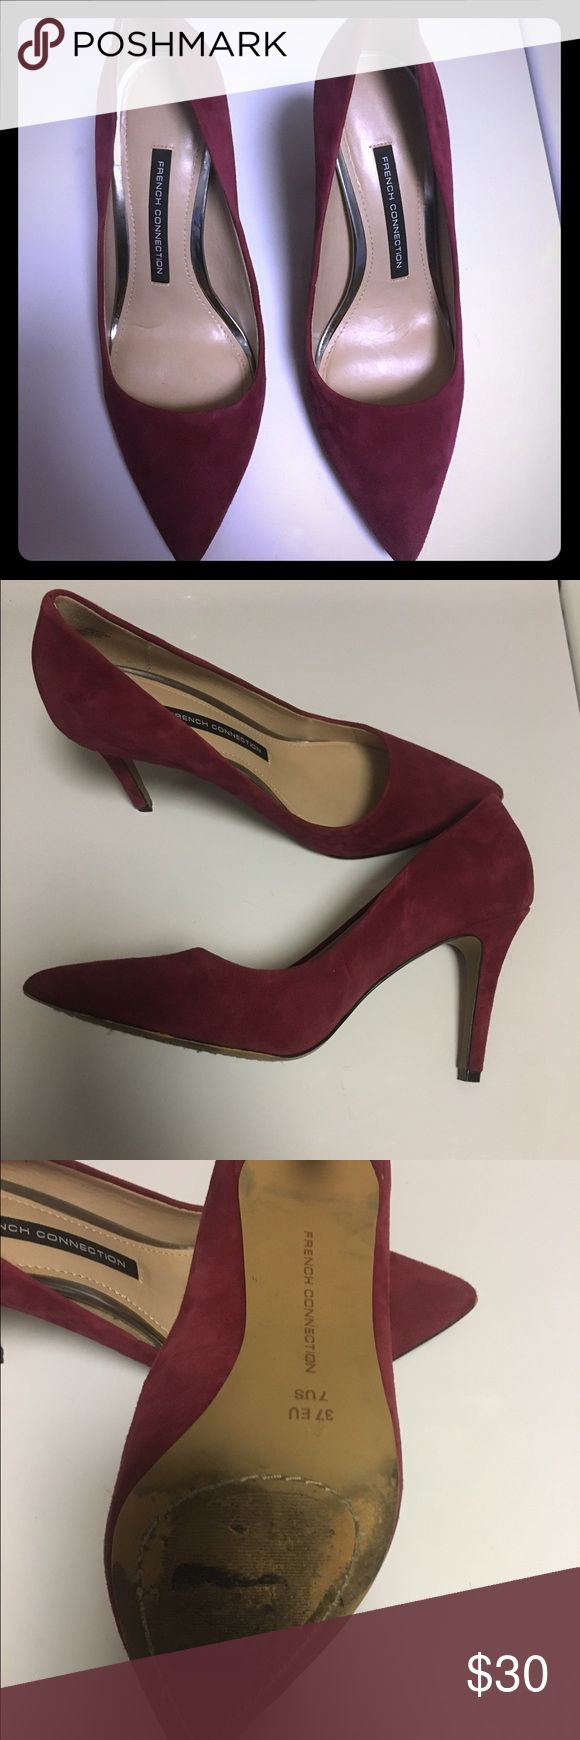 French Connection Rosalie suede pumps Only worn twice! Love these maroon shoes I just can't wear them anymore from a foot injury. I miss them already 😢 French Connection Shoes Heels